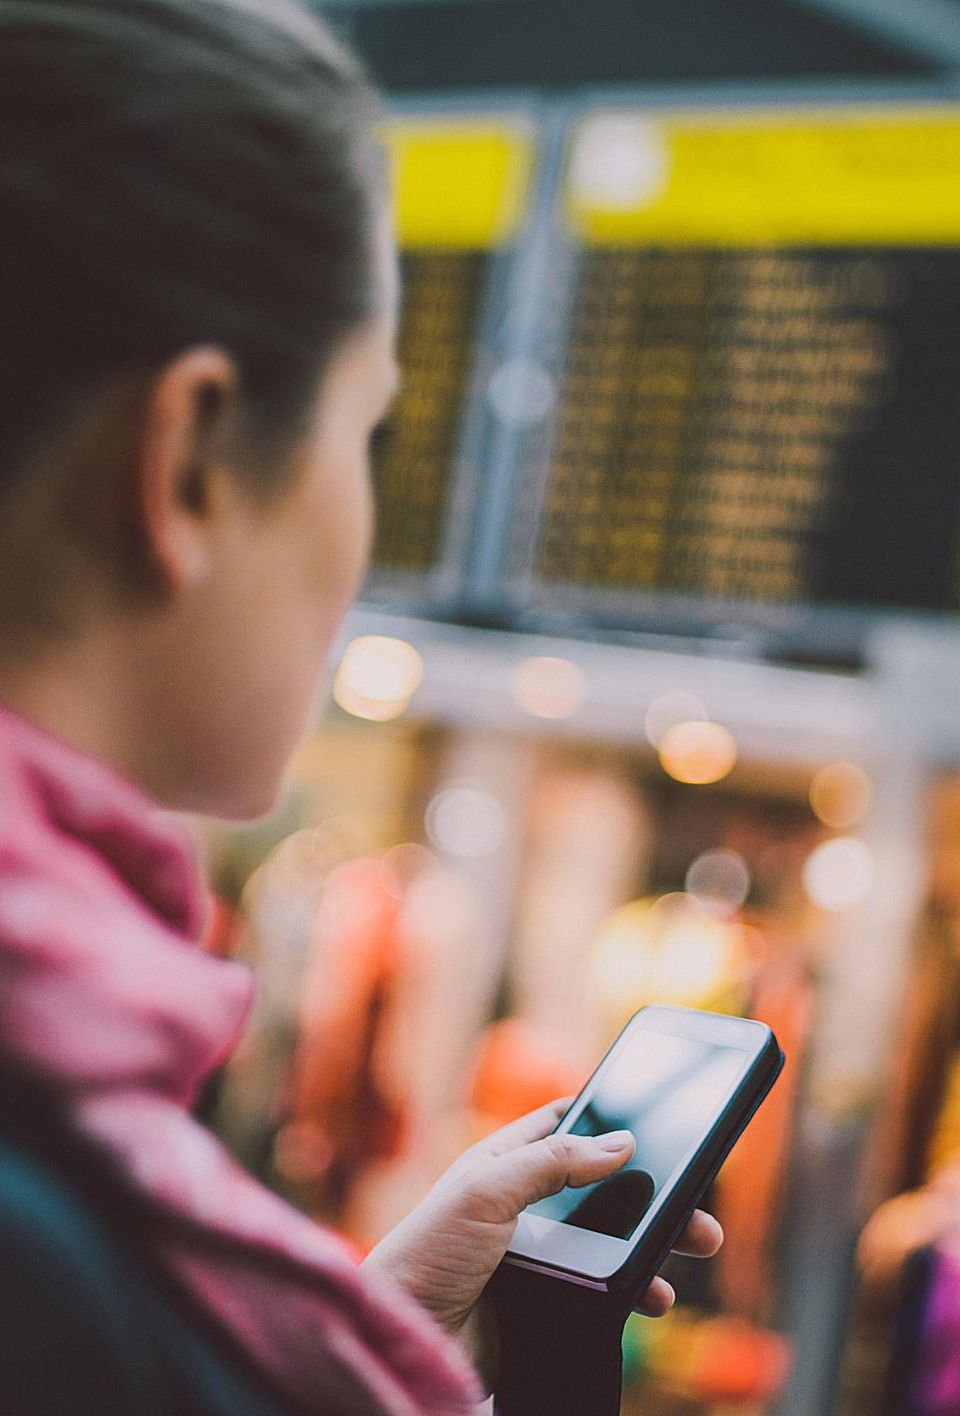 Woman using cell phone to check schedule of flights